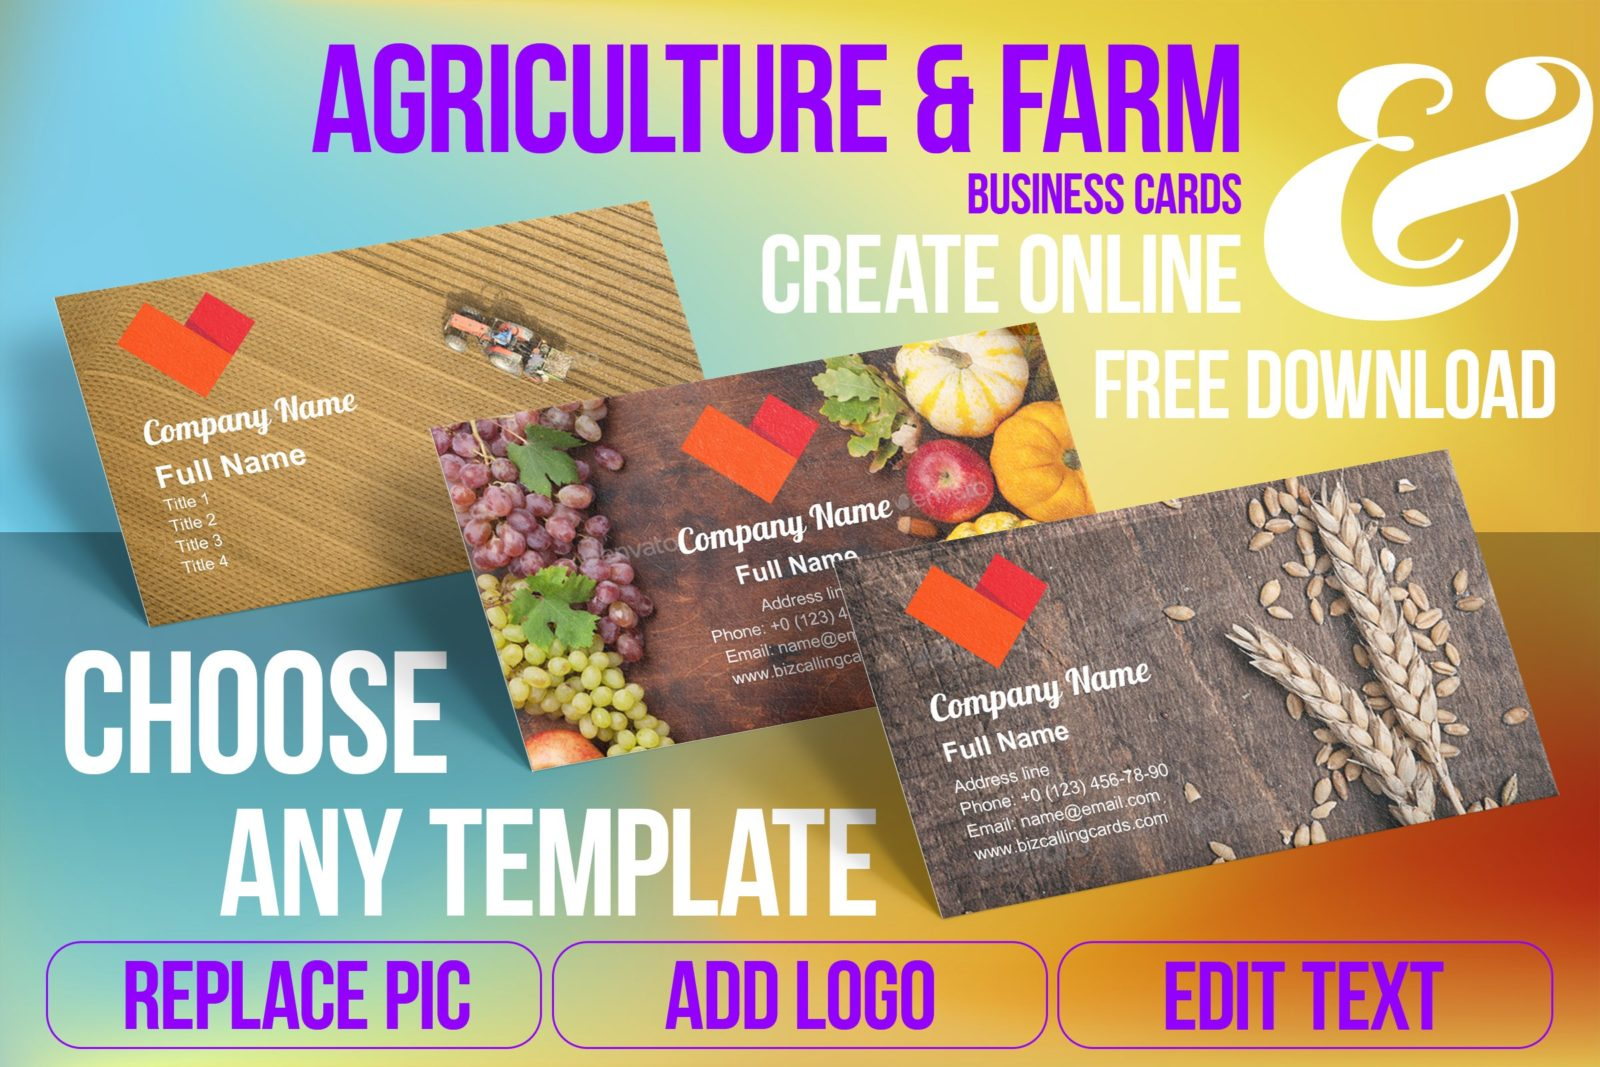 Business Card Templates For Agriculture & Farm Free Download